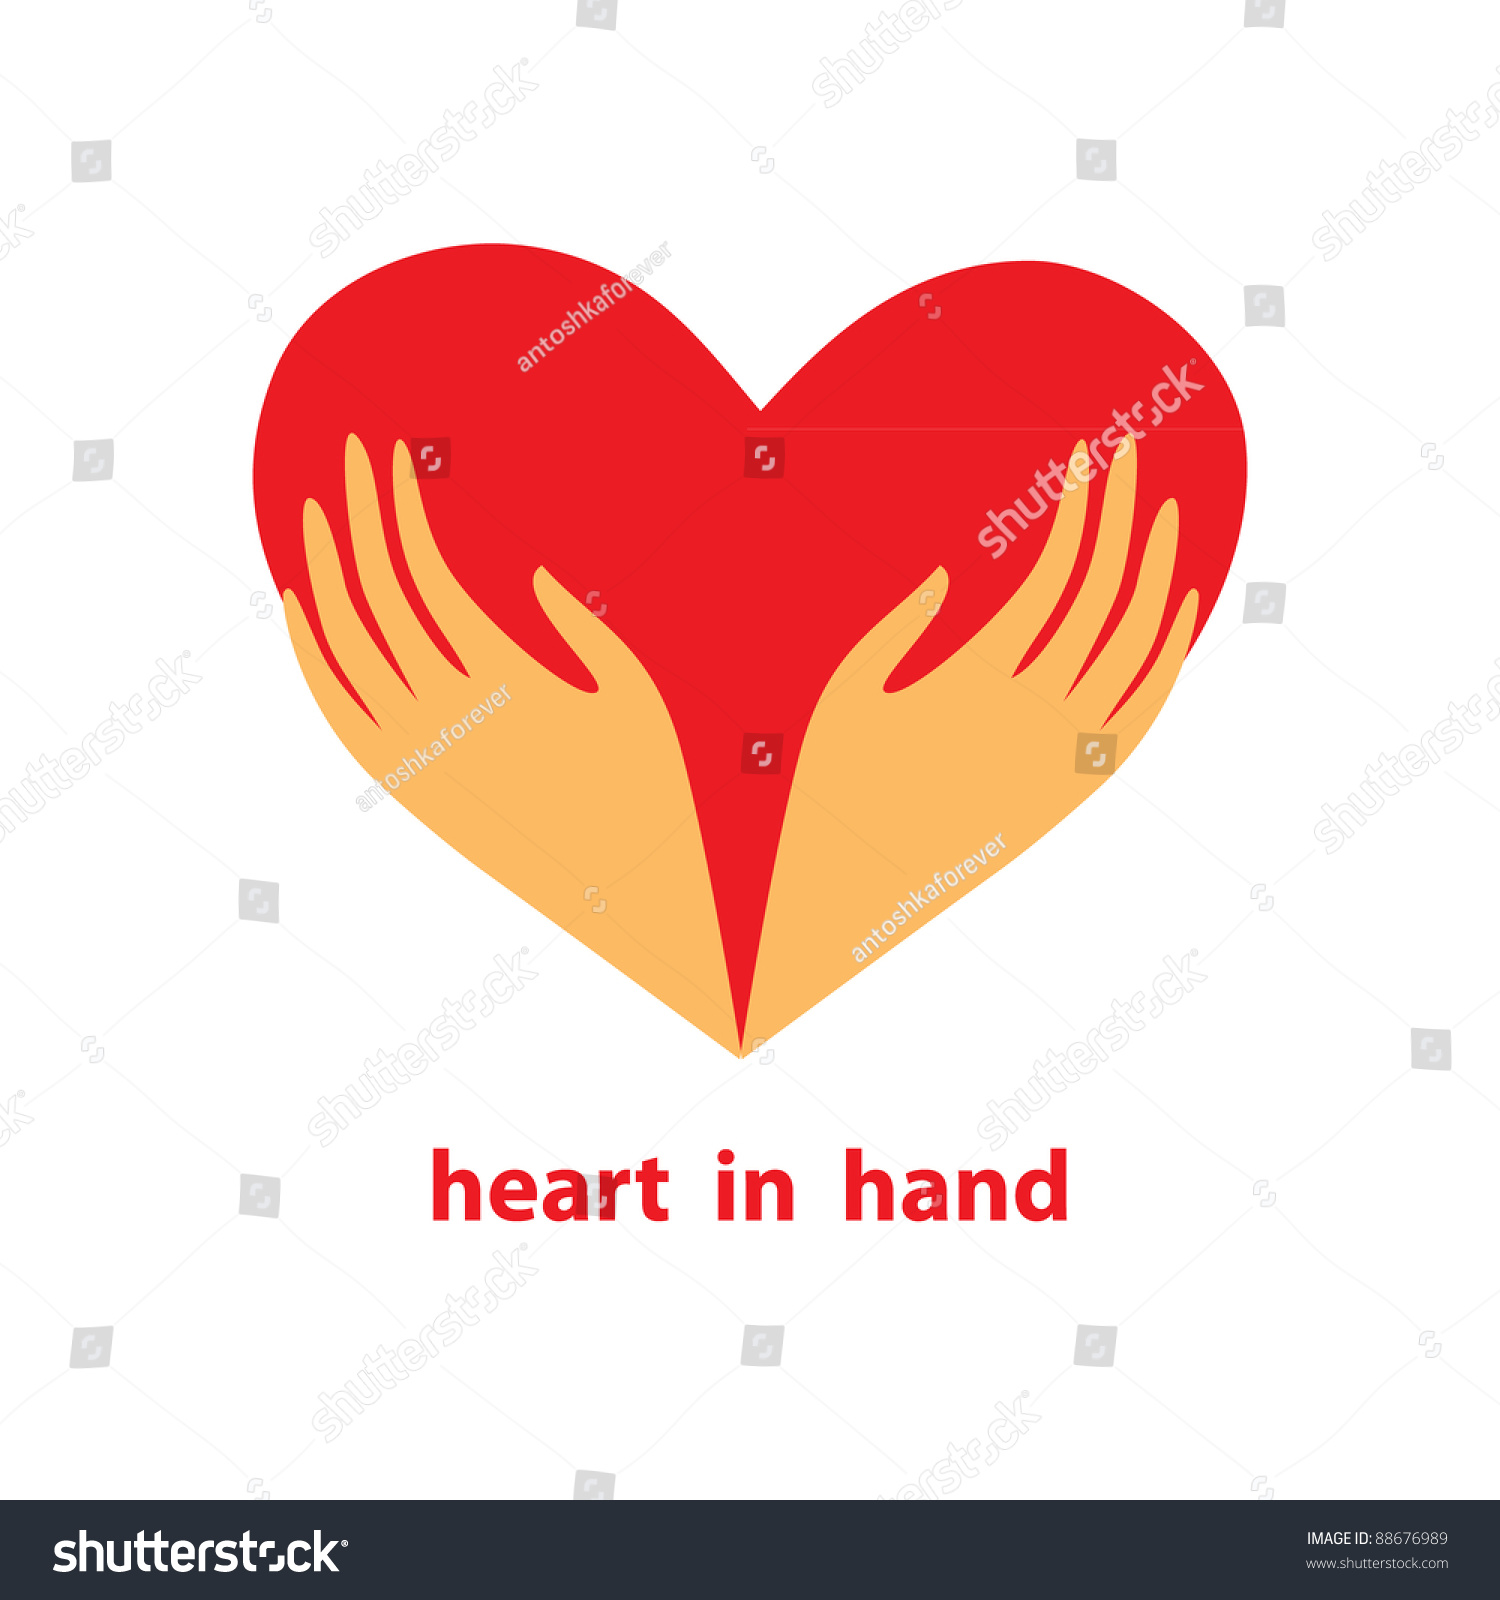 Template sign heart his hands symbol stock vector 88676989 template of the sign heart in his hands symbol love care buycottarizona